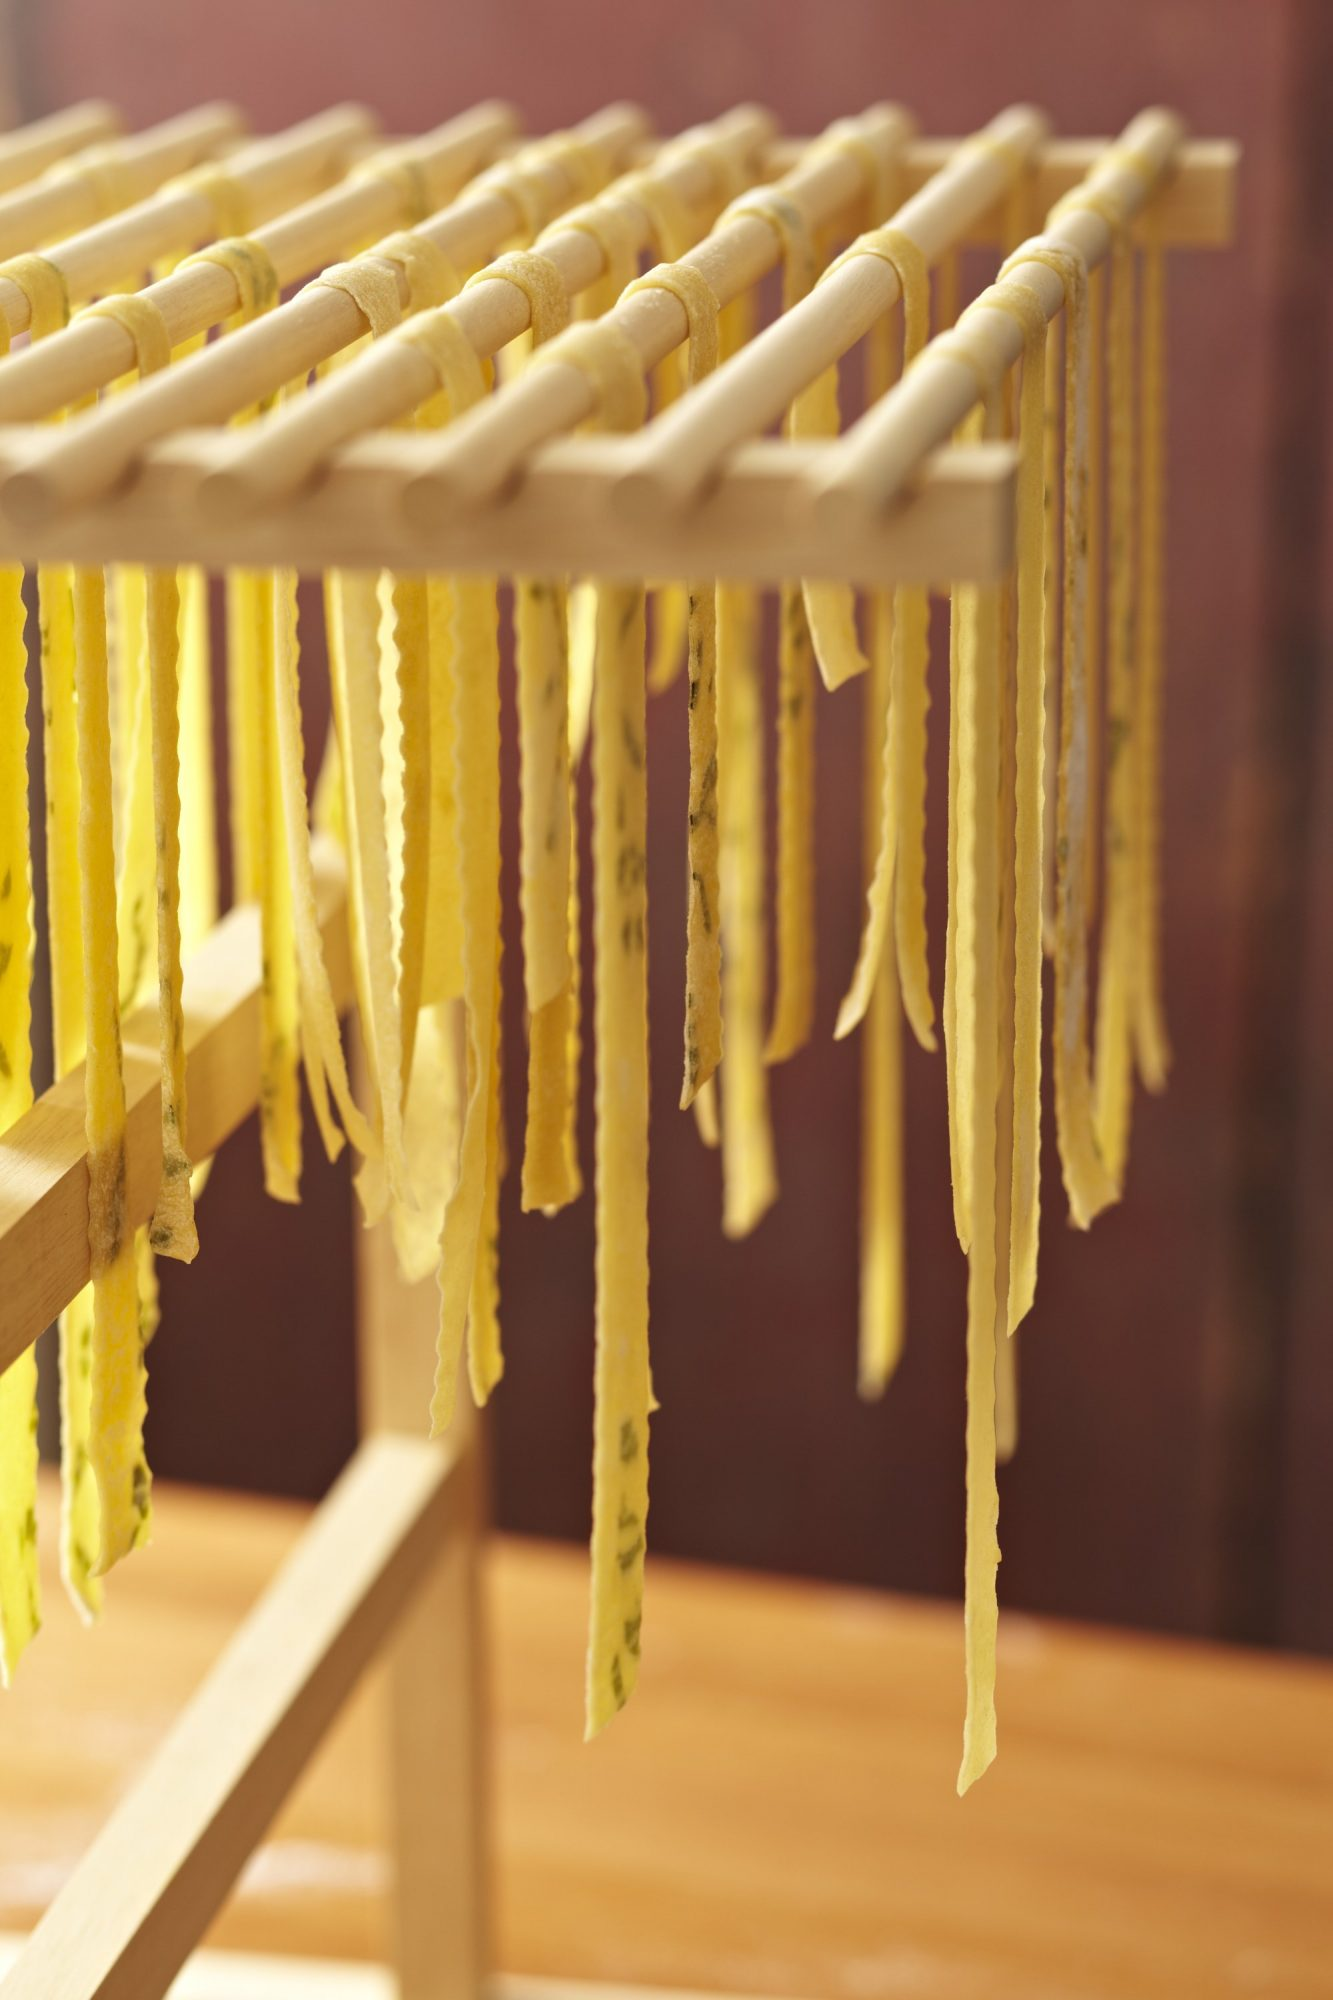 101910770_Cut-Fettuccine-Hanging-from-Pasta-Rack_Photo-by-Meredith.jpg